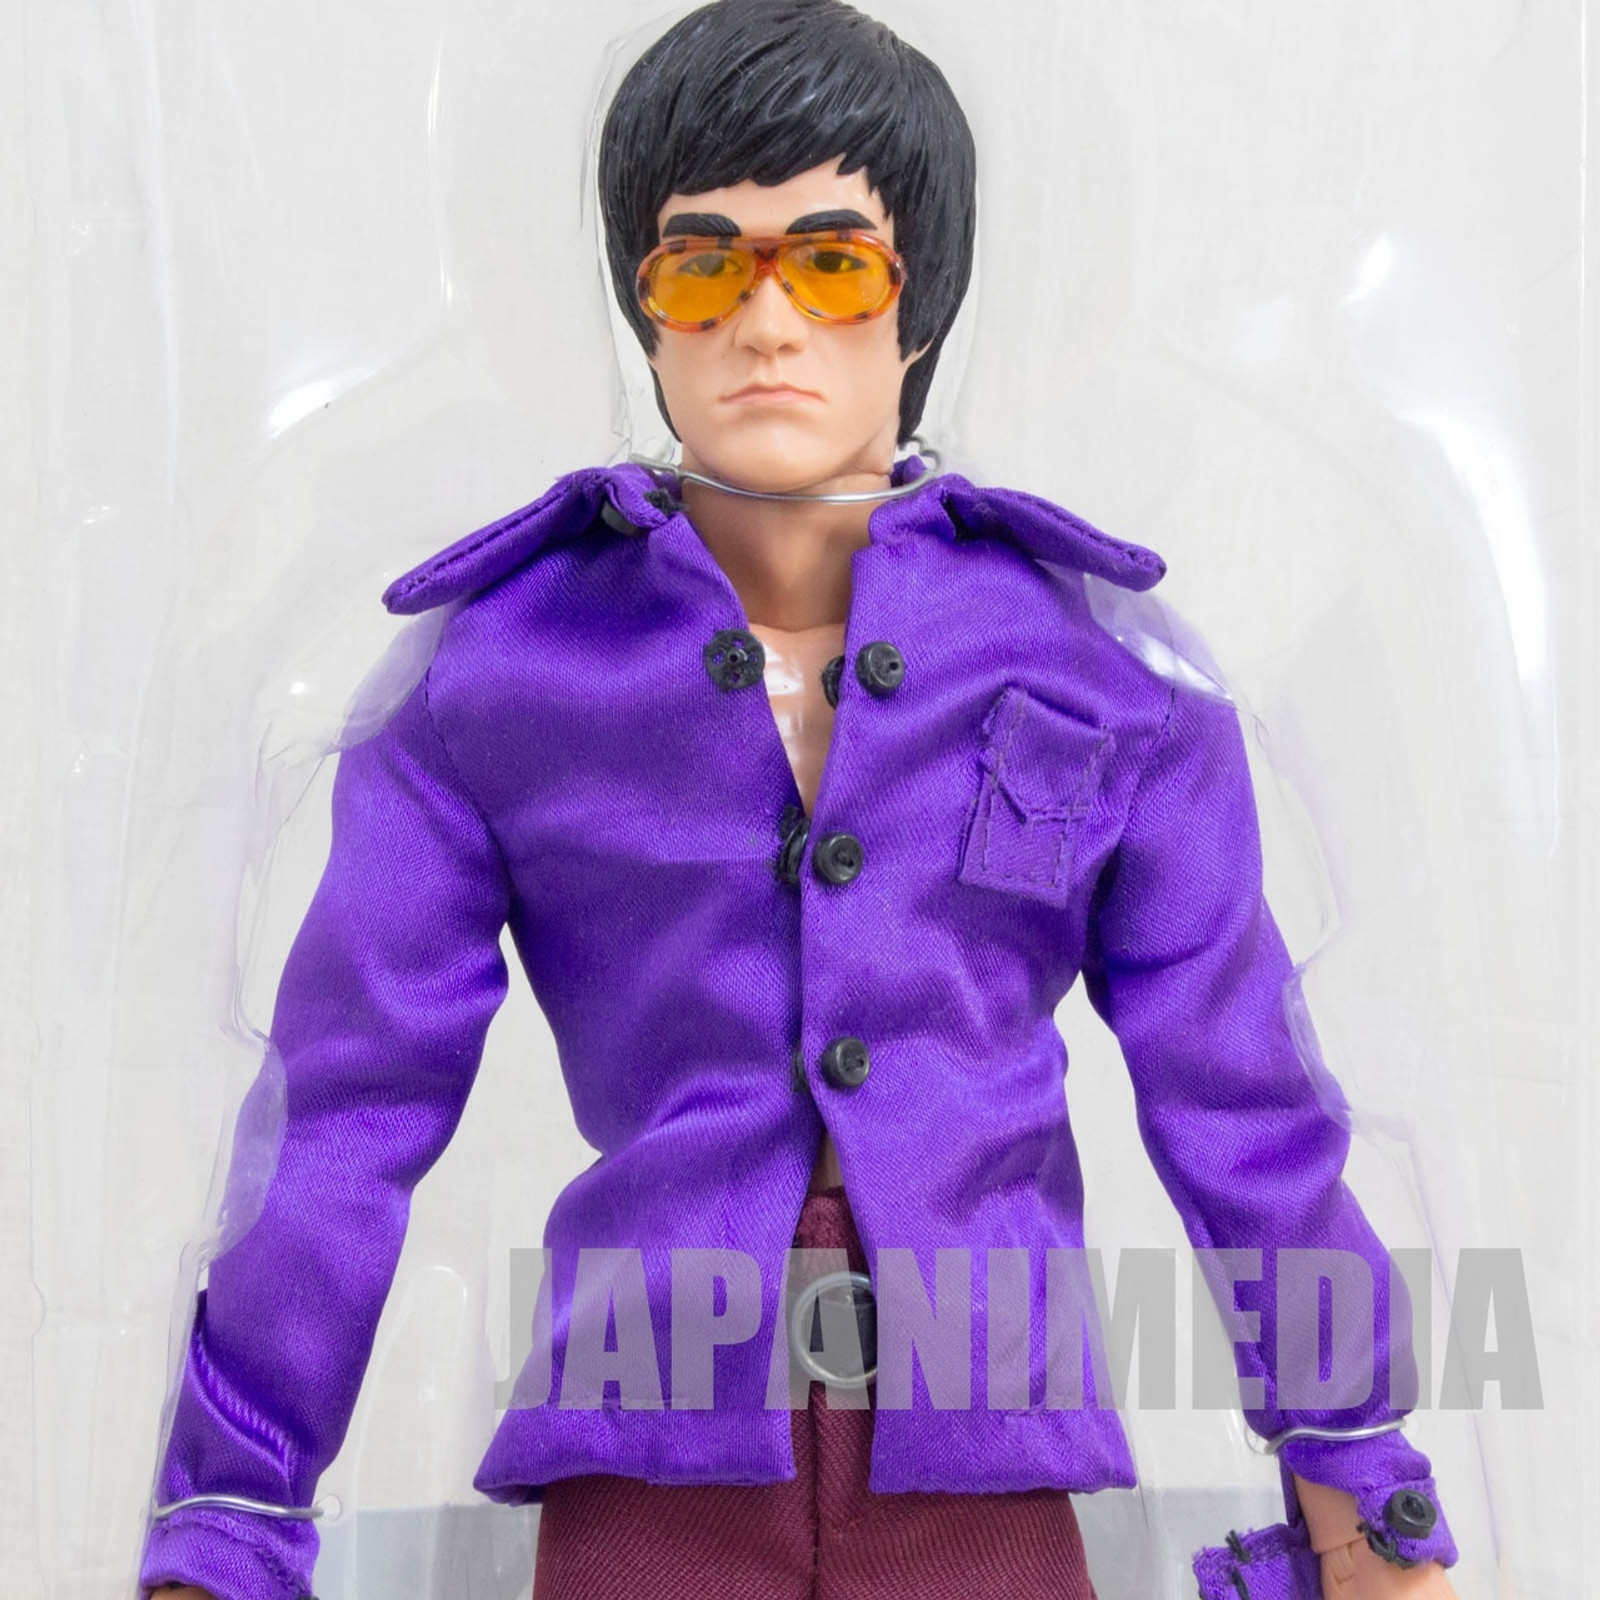 BRUCE LEE 1/6 Fashion Show Figure Purple Shirt Medicom Toy JAPAN KUNG FU MOVIE